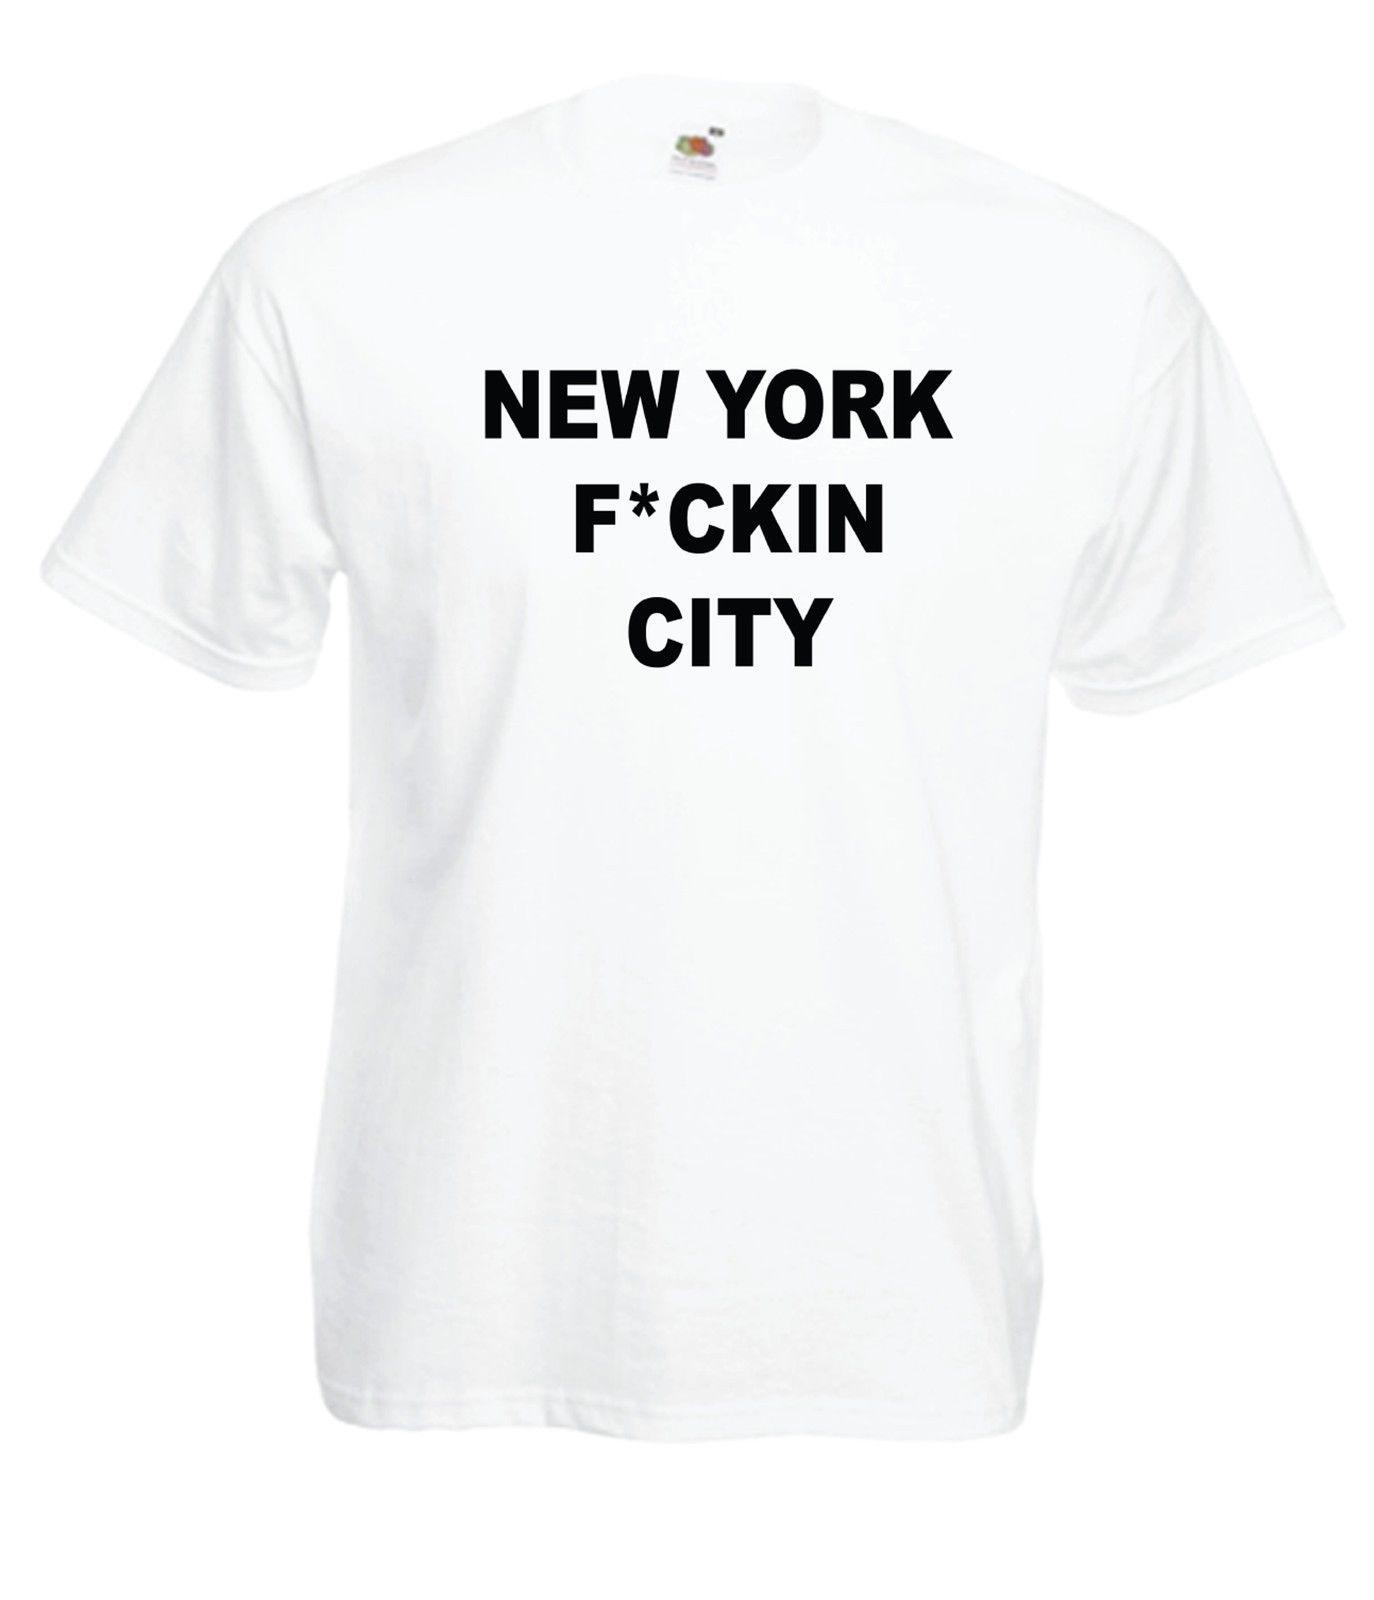 NEW YORK CITY Funny America Slogan Xmas Birthday Gift Idea Suit Hat Pink T Shirt RETRO VINTAGE Classic Black Shirts Long Sleeve From Smilecup